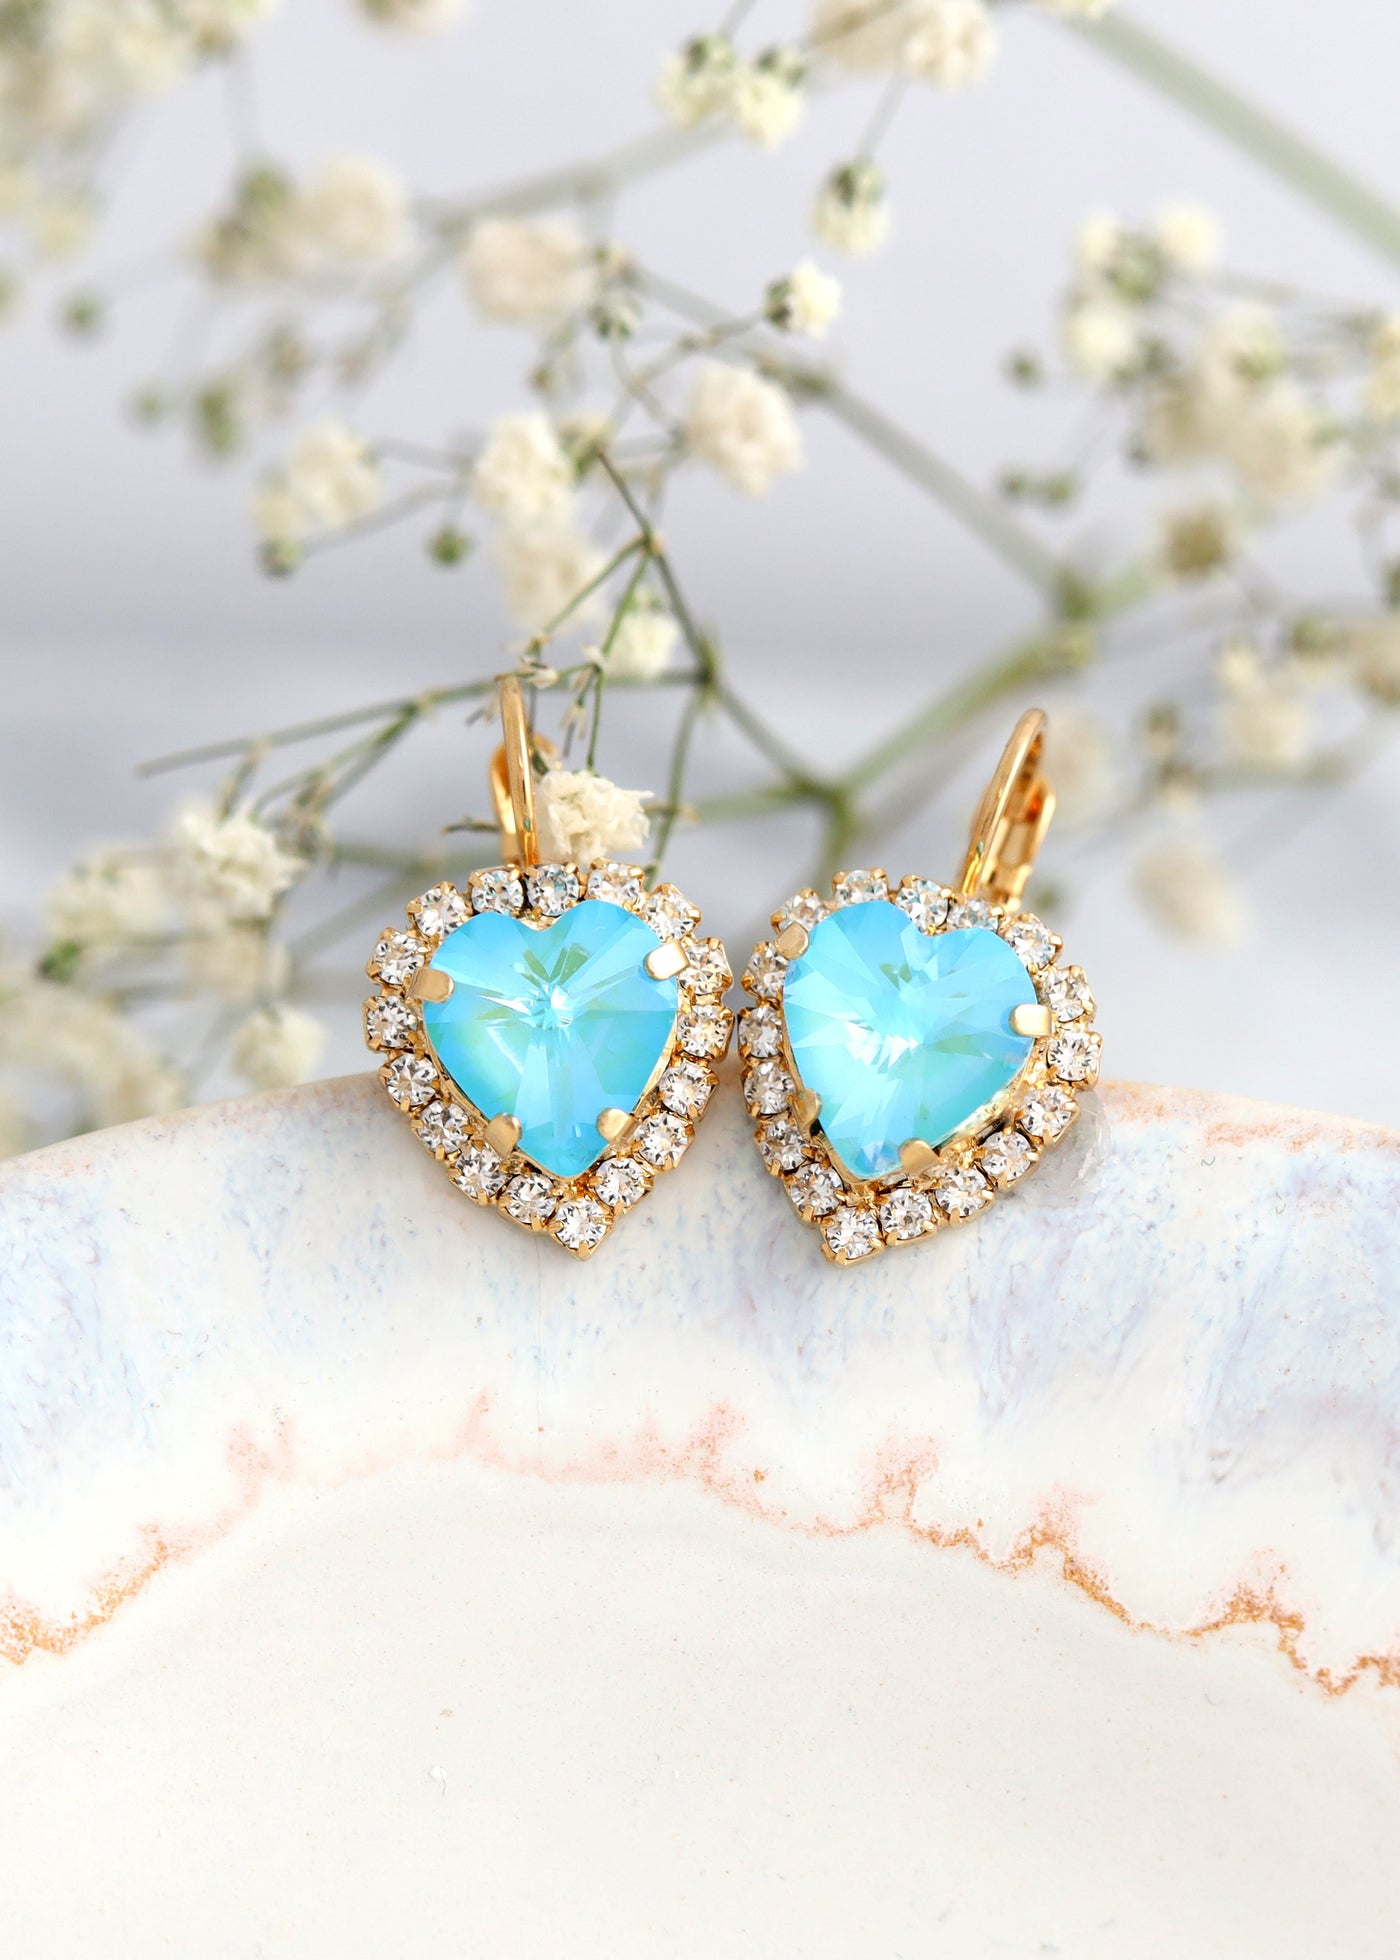 Heart Earrings, Blue Drop Earrings, Heart Drop Earrings, Sky Blue Earrings, Christmas Gift For Her, Crystal Heart Blue Bridal Earrings